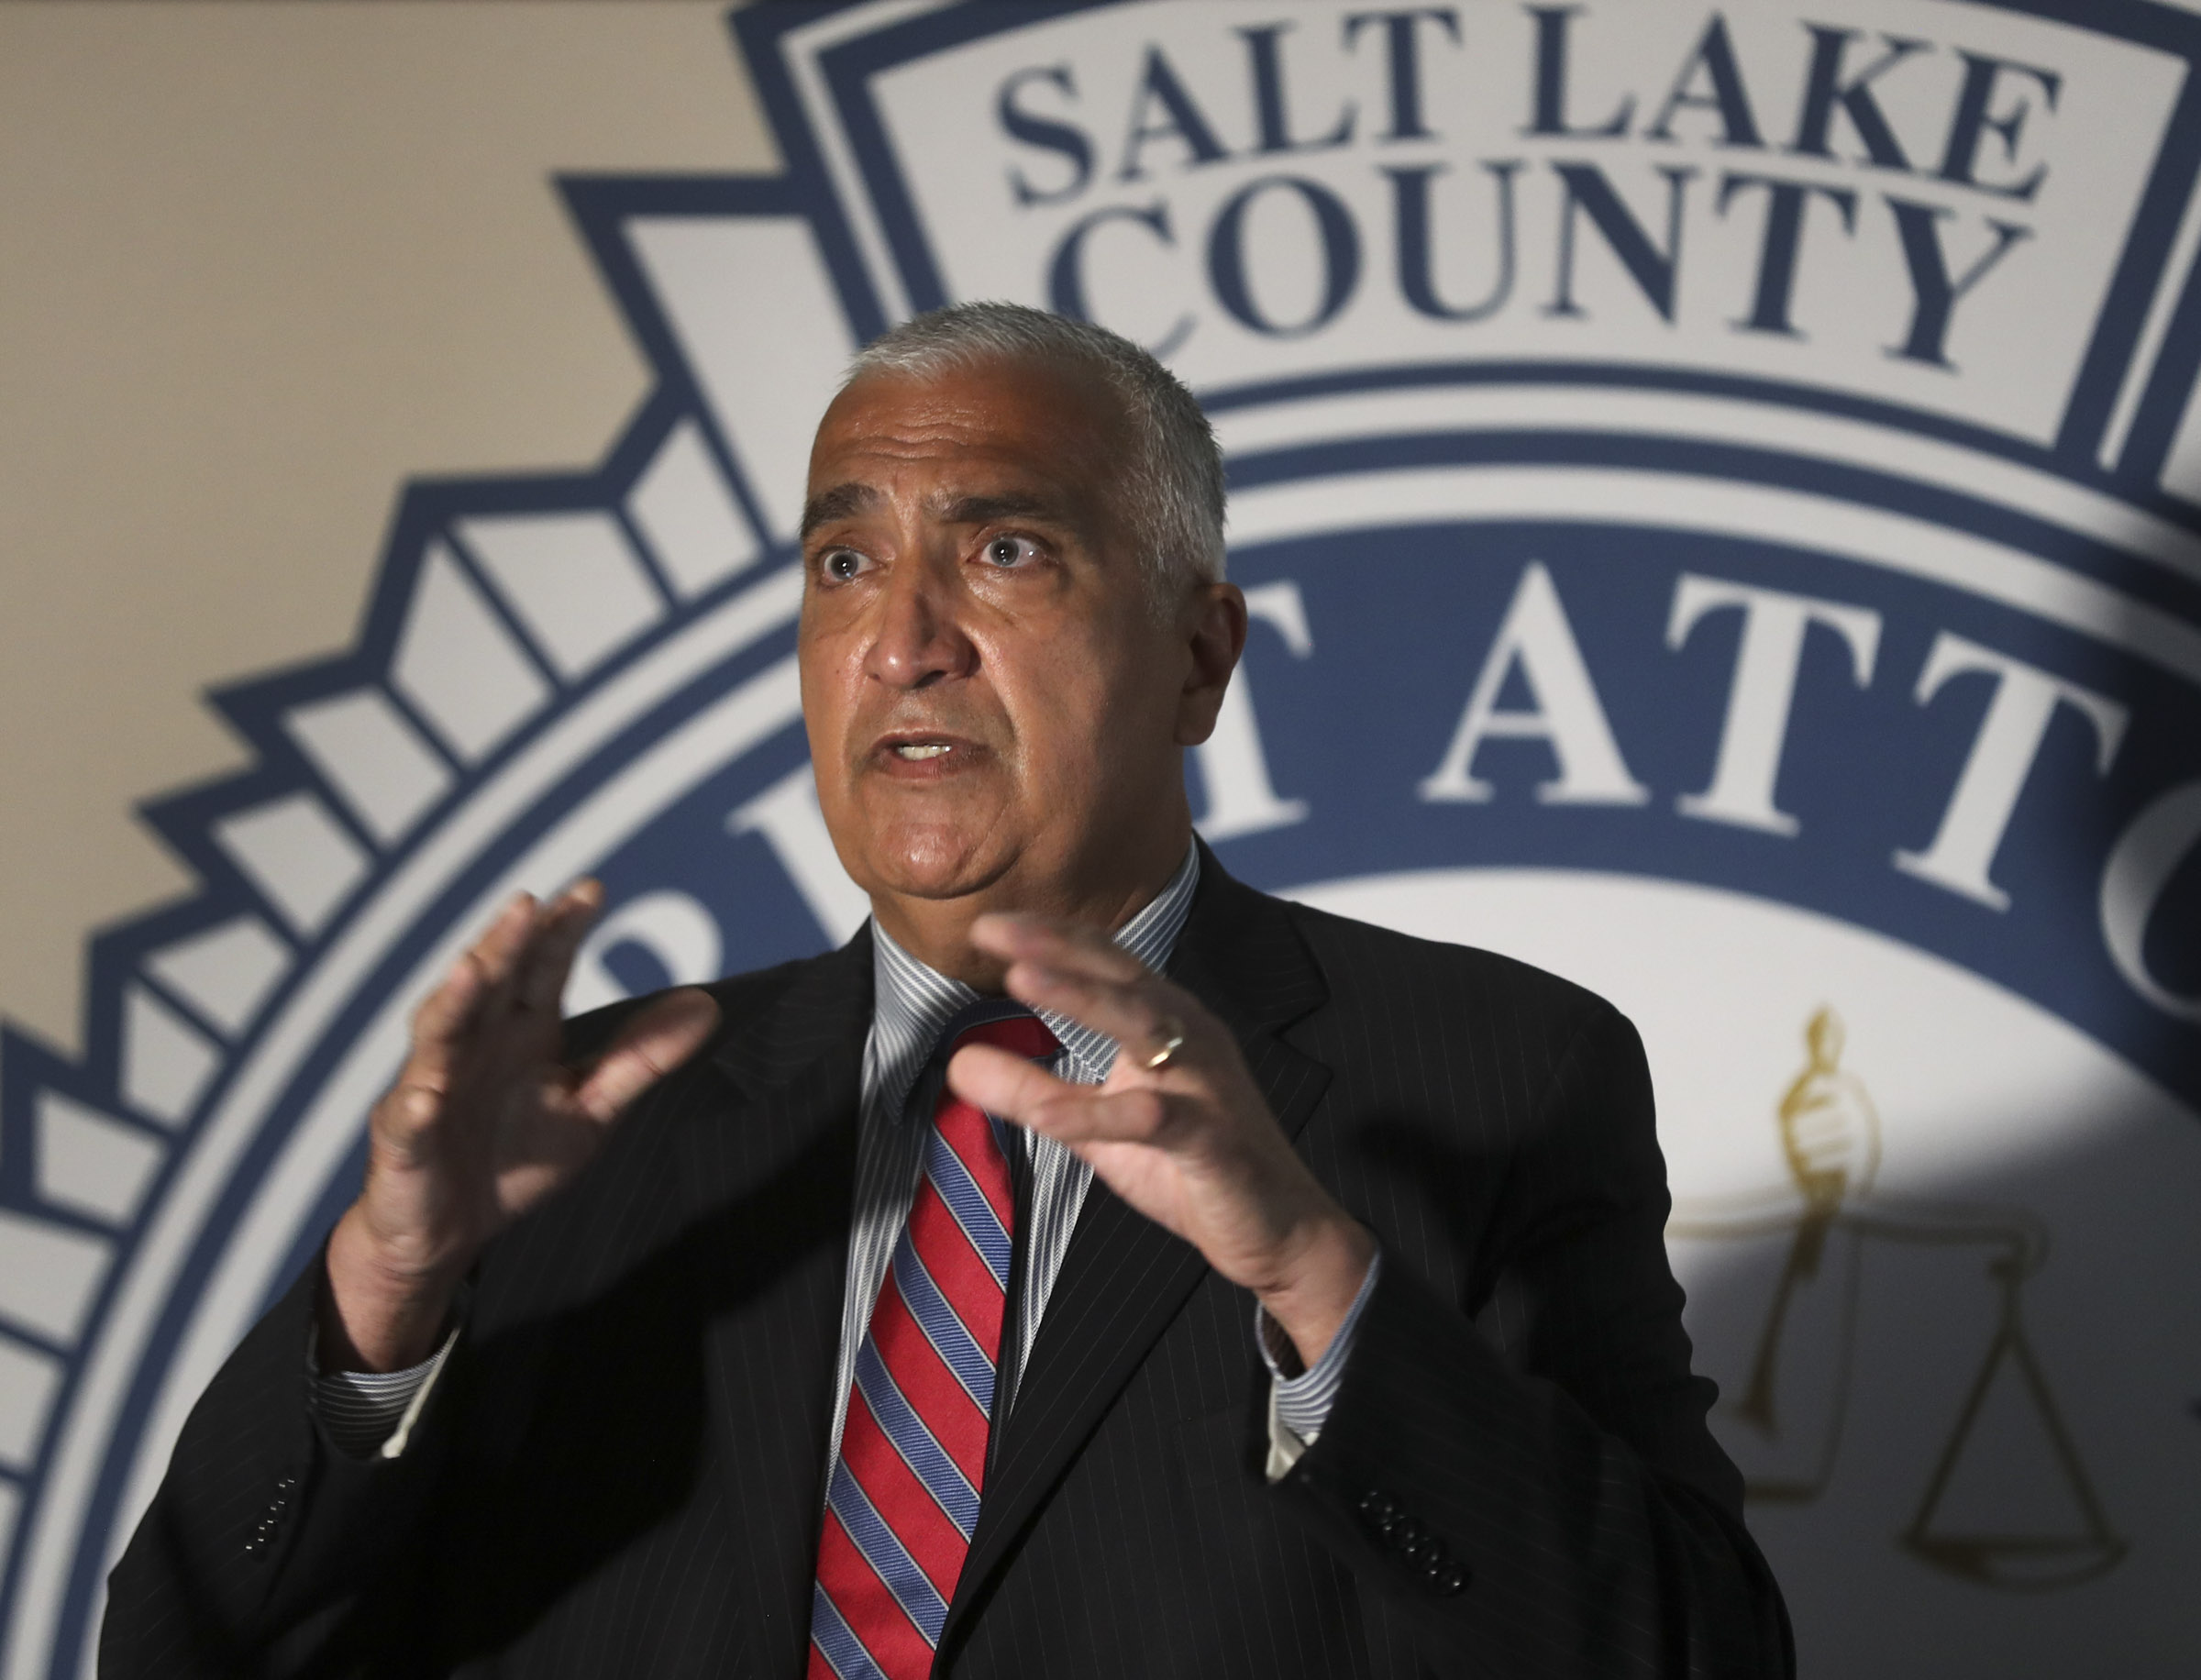 Salt Lake County District Attorney Sim Gill talks about the May 23 officer-involved shooting of Bernardo Palacios-Carbajal during a press conference at the district attorney office building in Salt Lake City on Thursday, July 9, 2020. Gill said the officer's use of deadly force was justified.